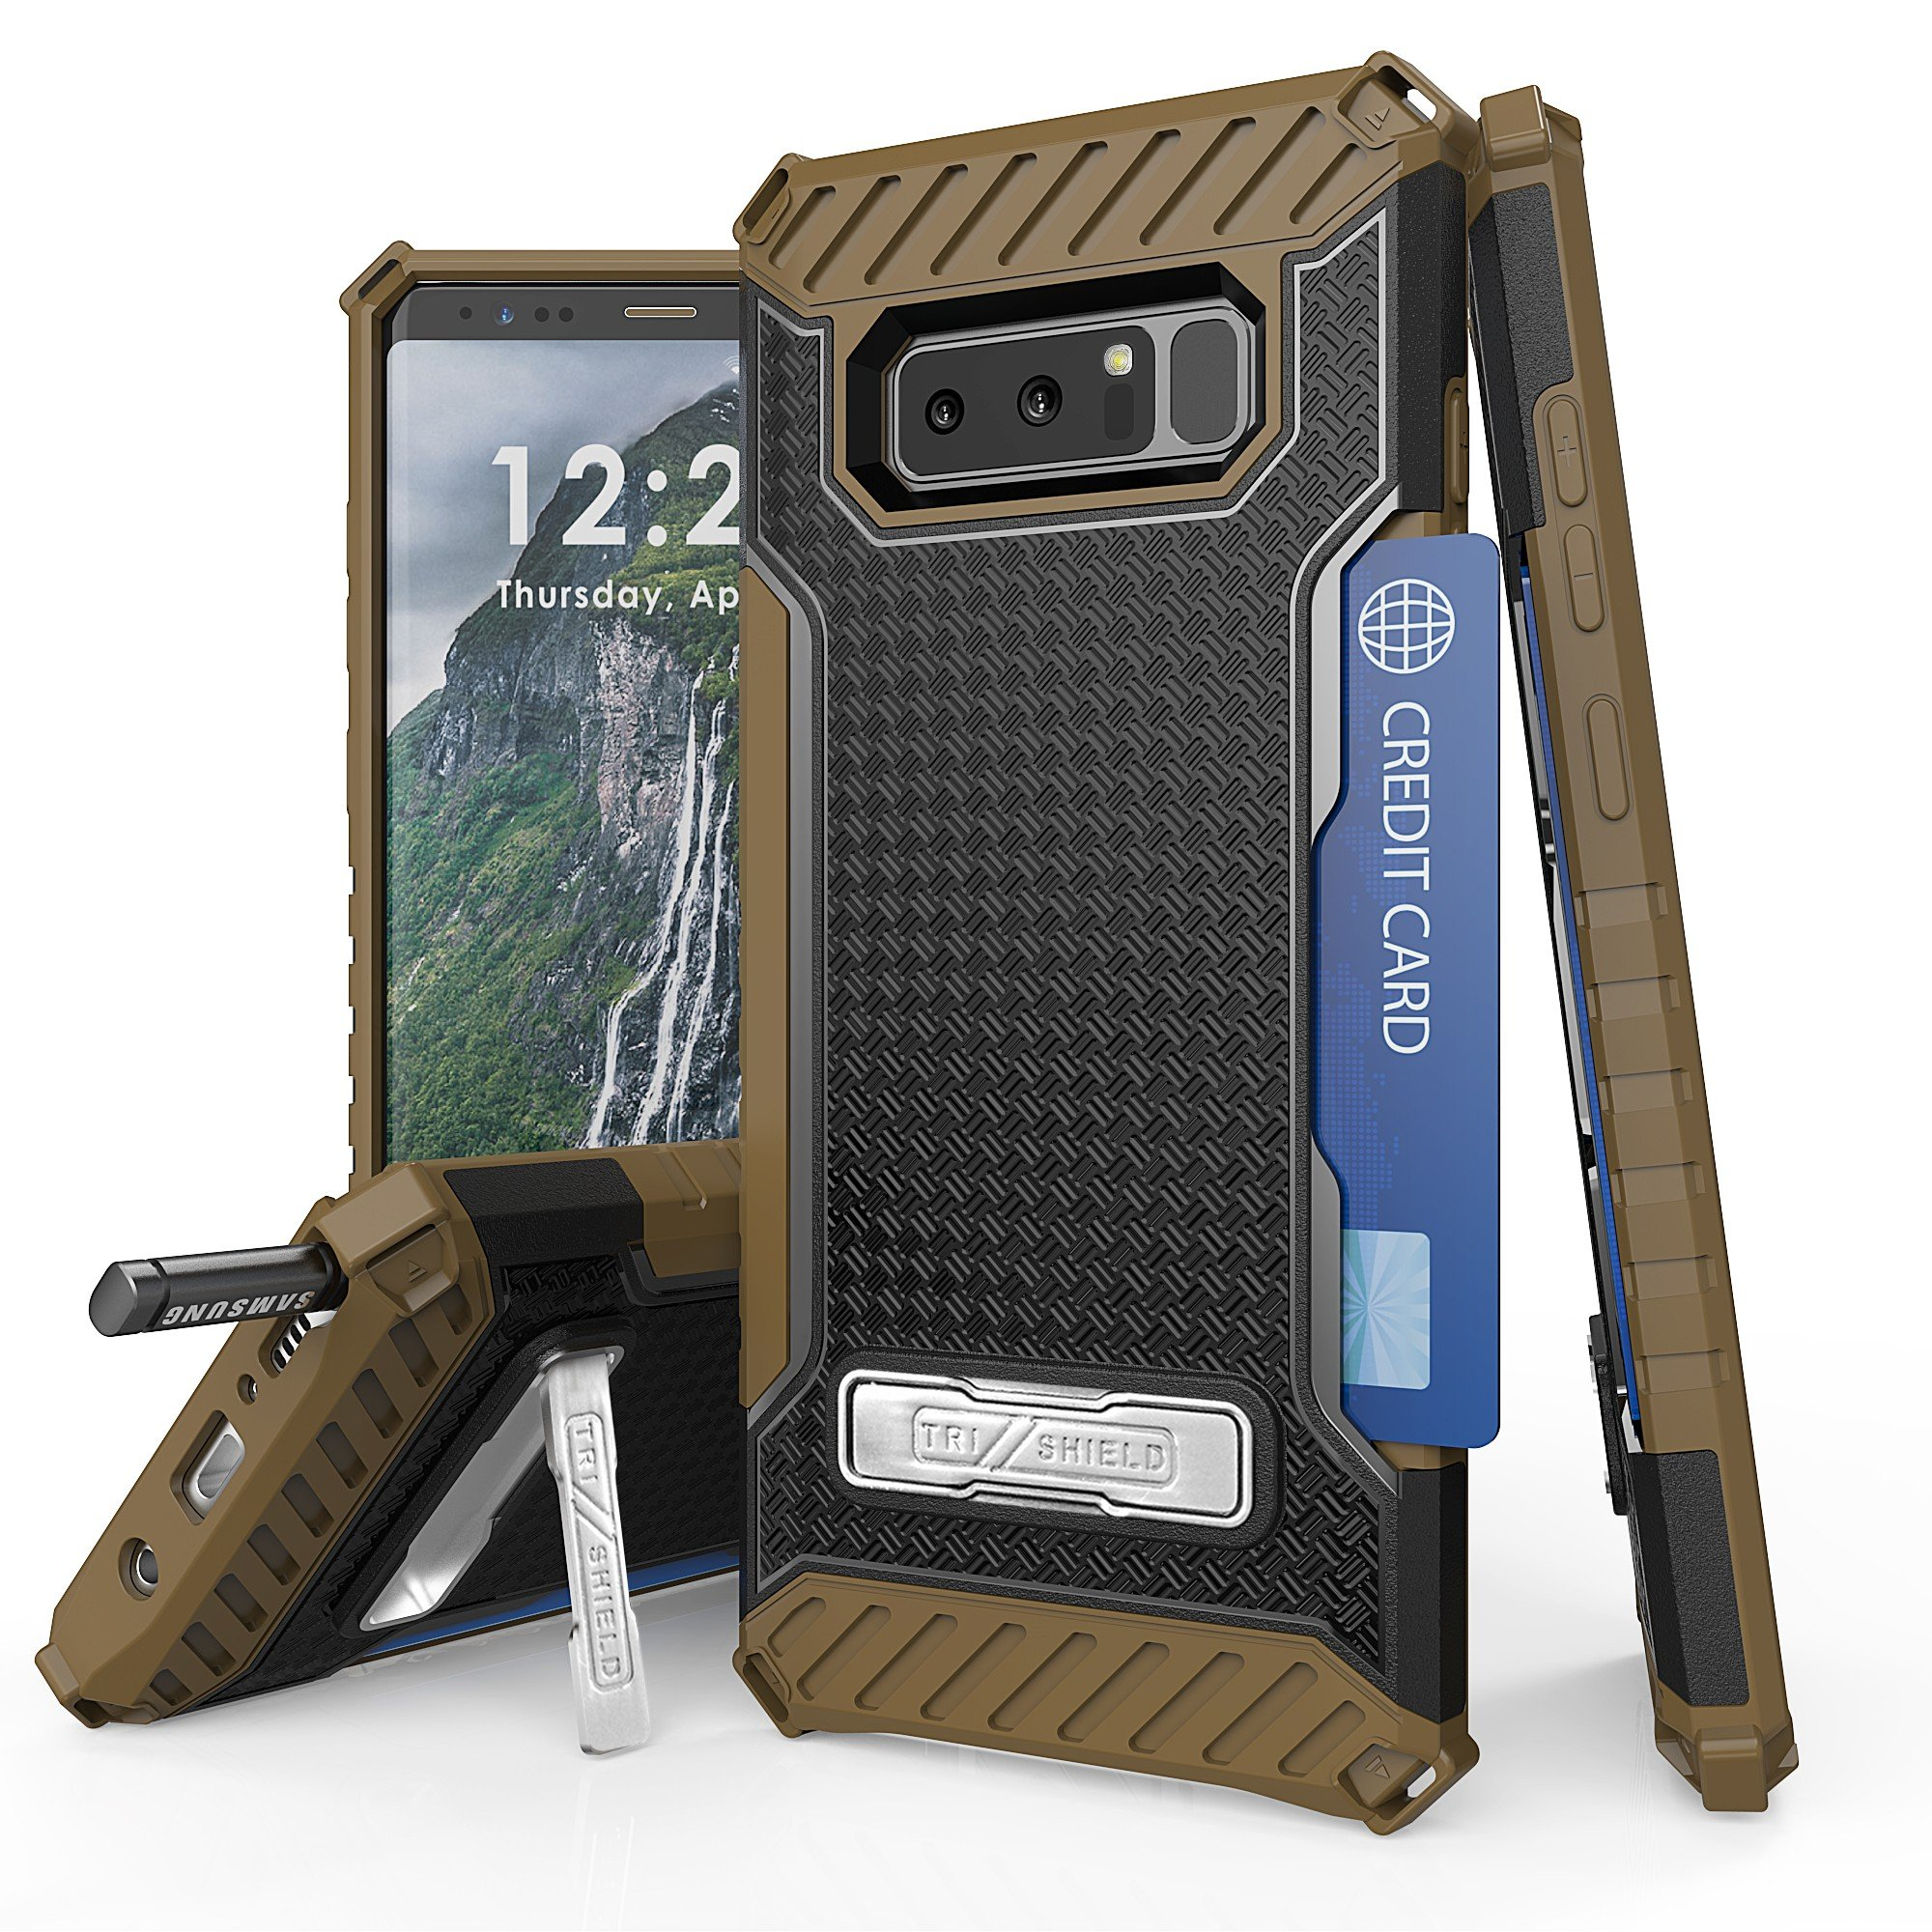 Galaxy Note 8 Case, Trishield Durable Shockproof High Impact Rugged Full Protection Armor Black Tan Phone Cover With Detachable Lanyard Loop Built In Kickstand And Card Slot